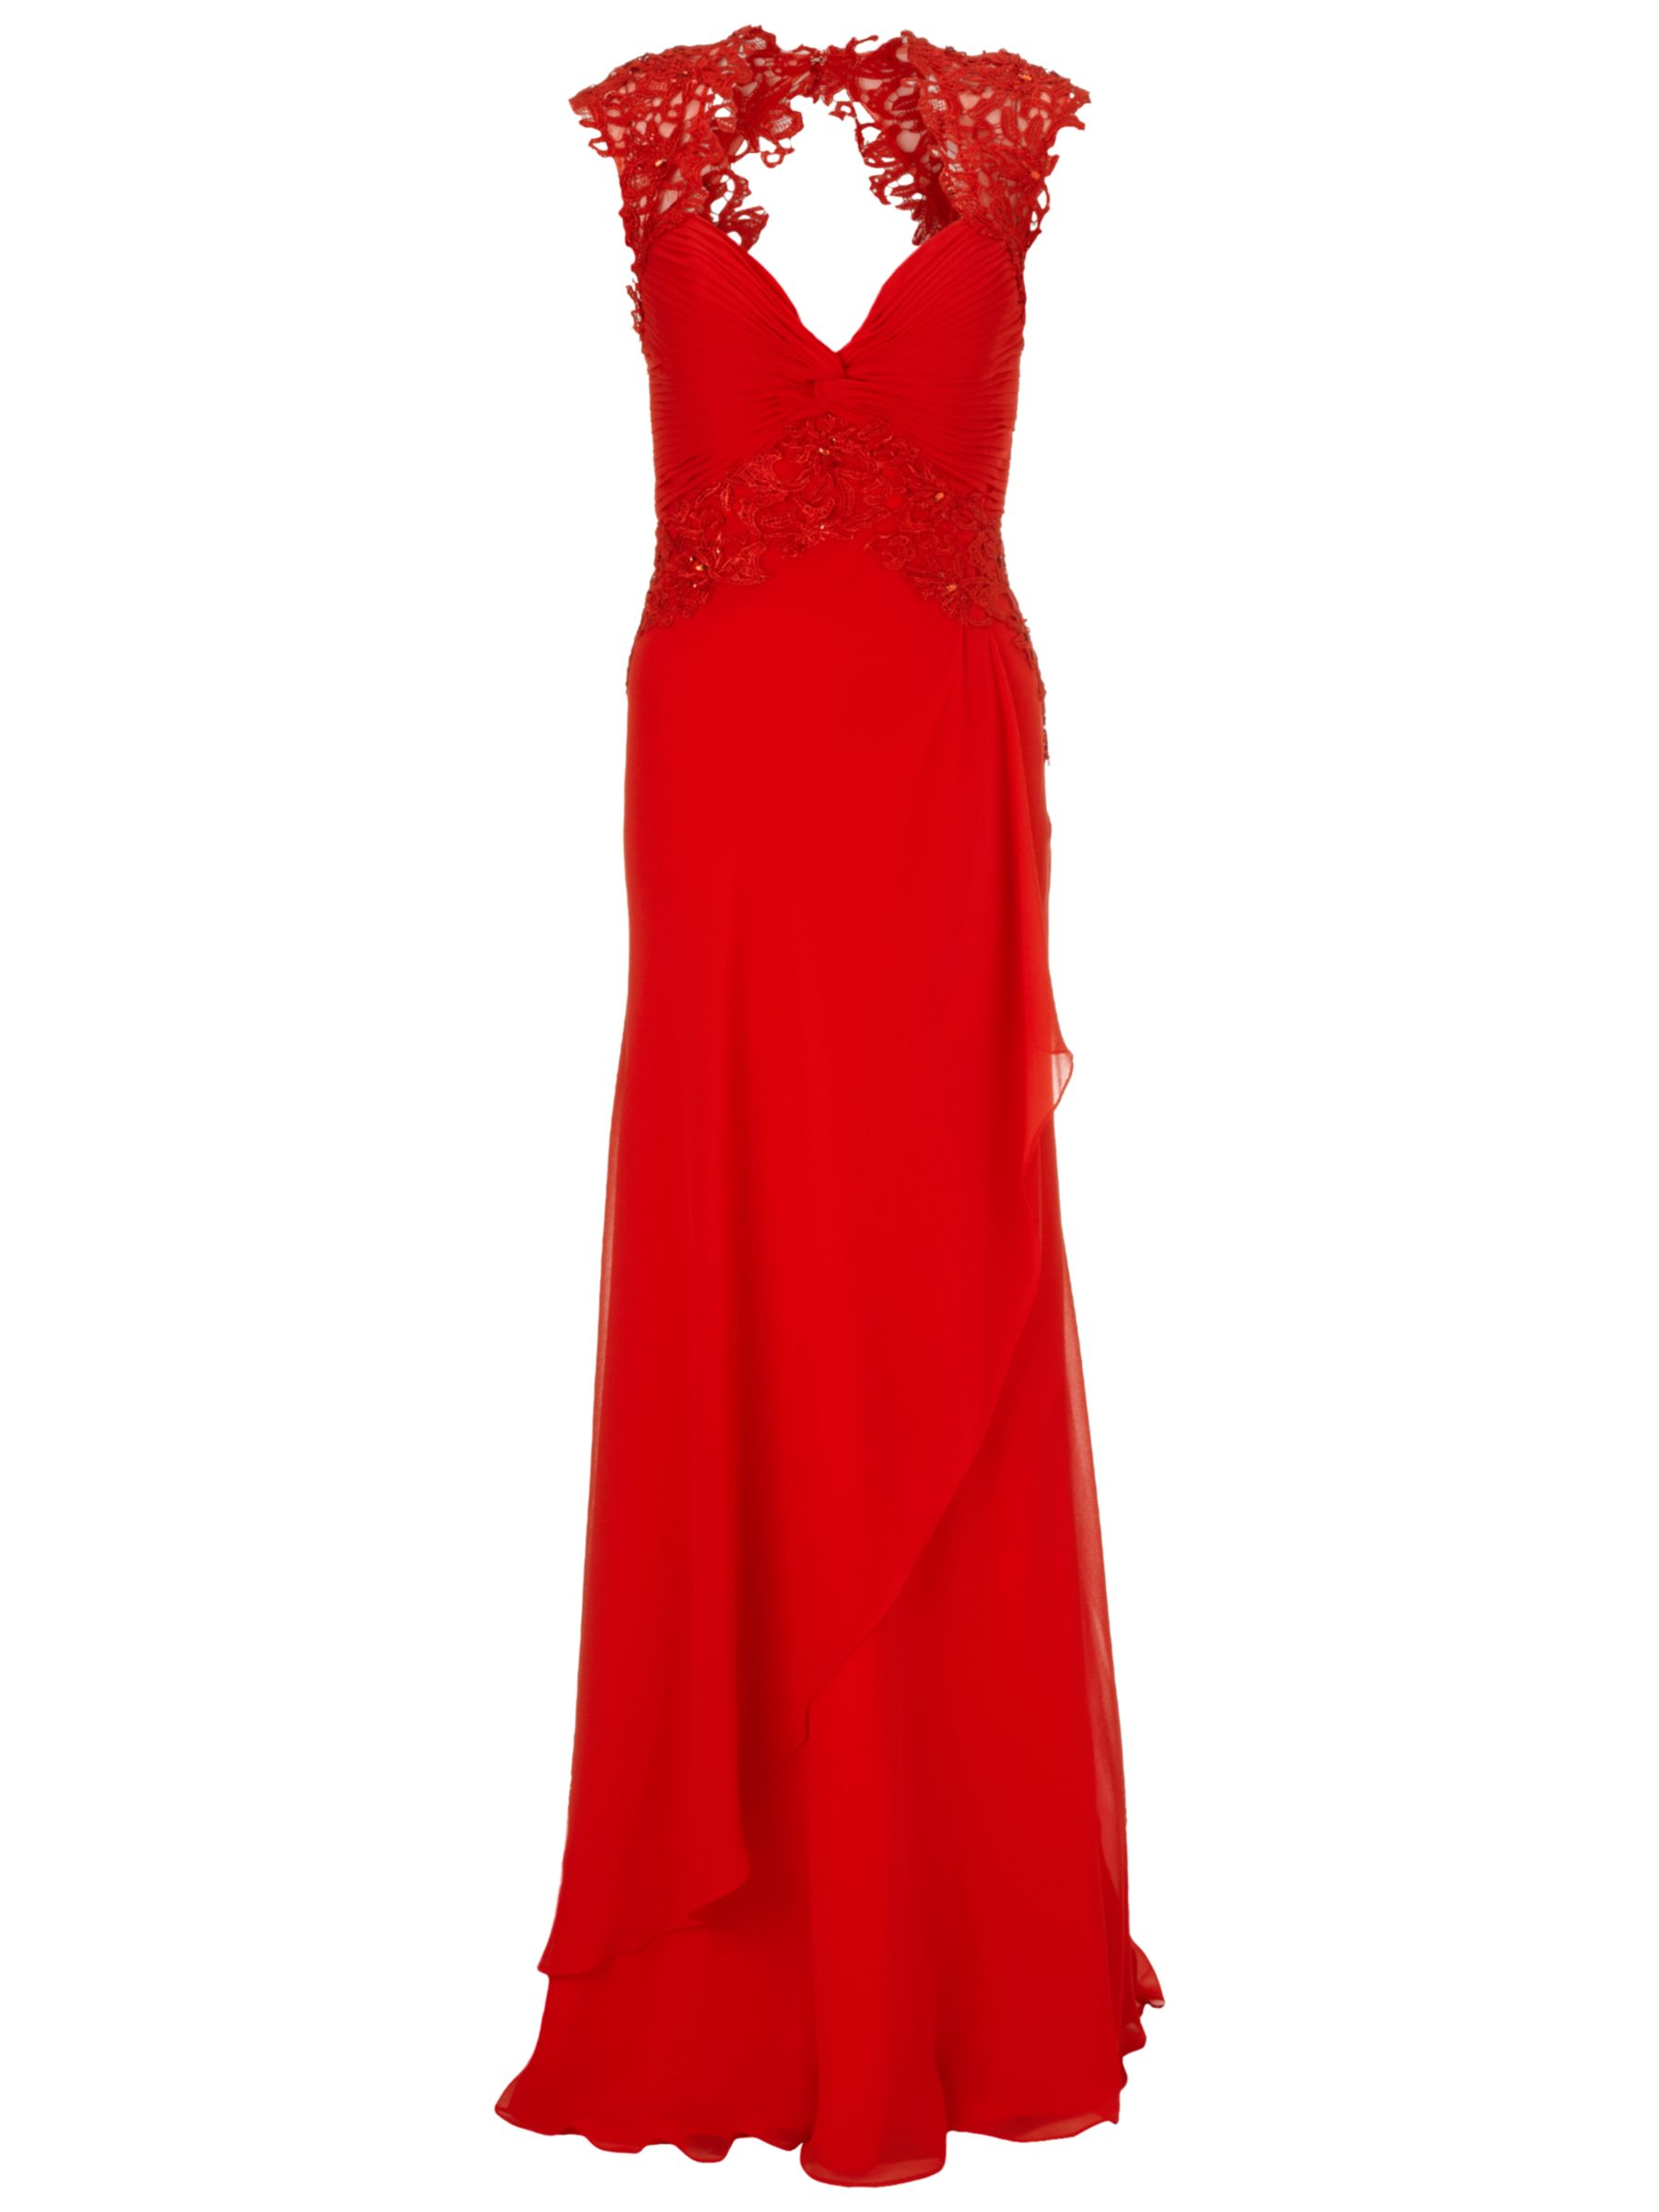 gina bacconi long chiffon lace detail dress red, gina, bacconi, long, chiffon, lace, detail, dress, red, gina bacconi, 8|14|10|18|12|22|20|16, women, eveningwear, party outfits, lace dress, womens dresses, gifts, valentines day, red dress, 1631755